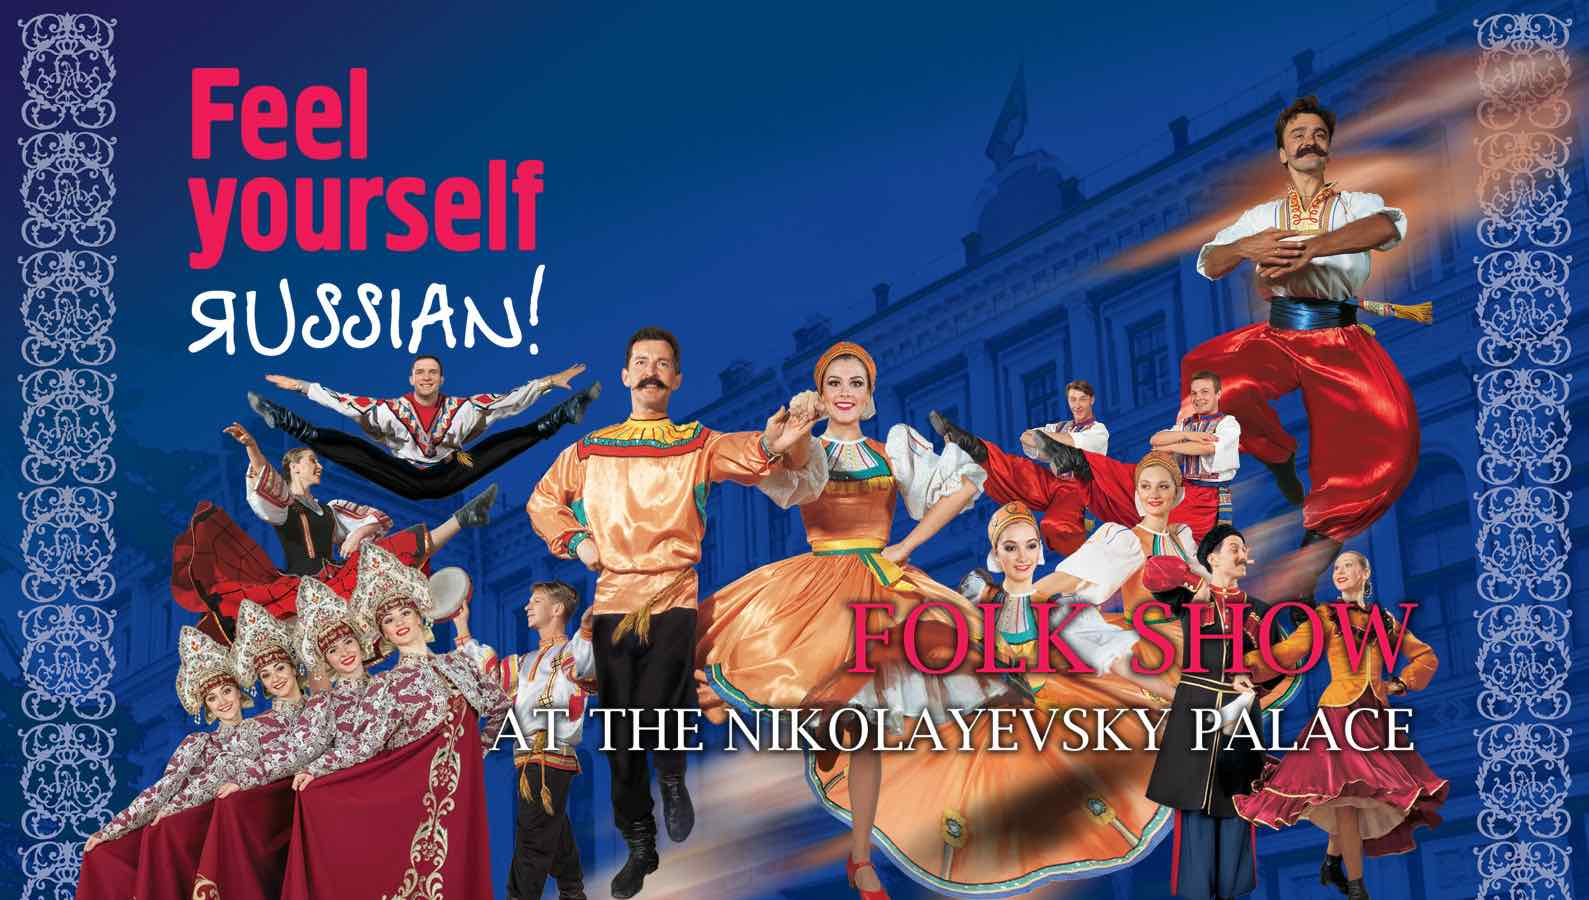 Feel-yourself-Russian-Folk-Show-St Petersburg